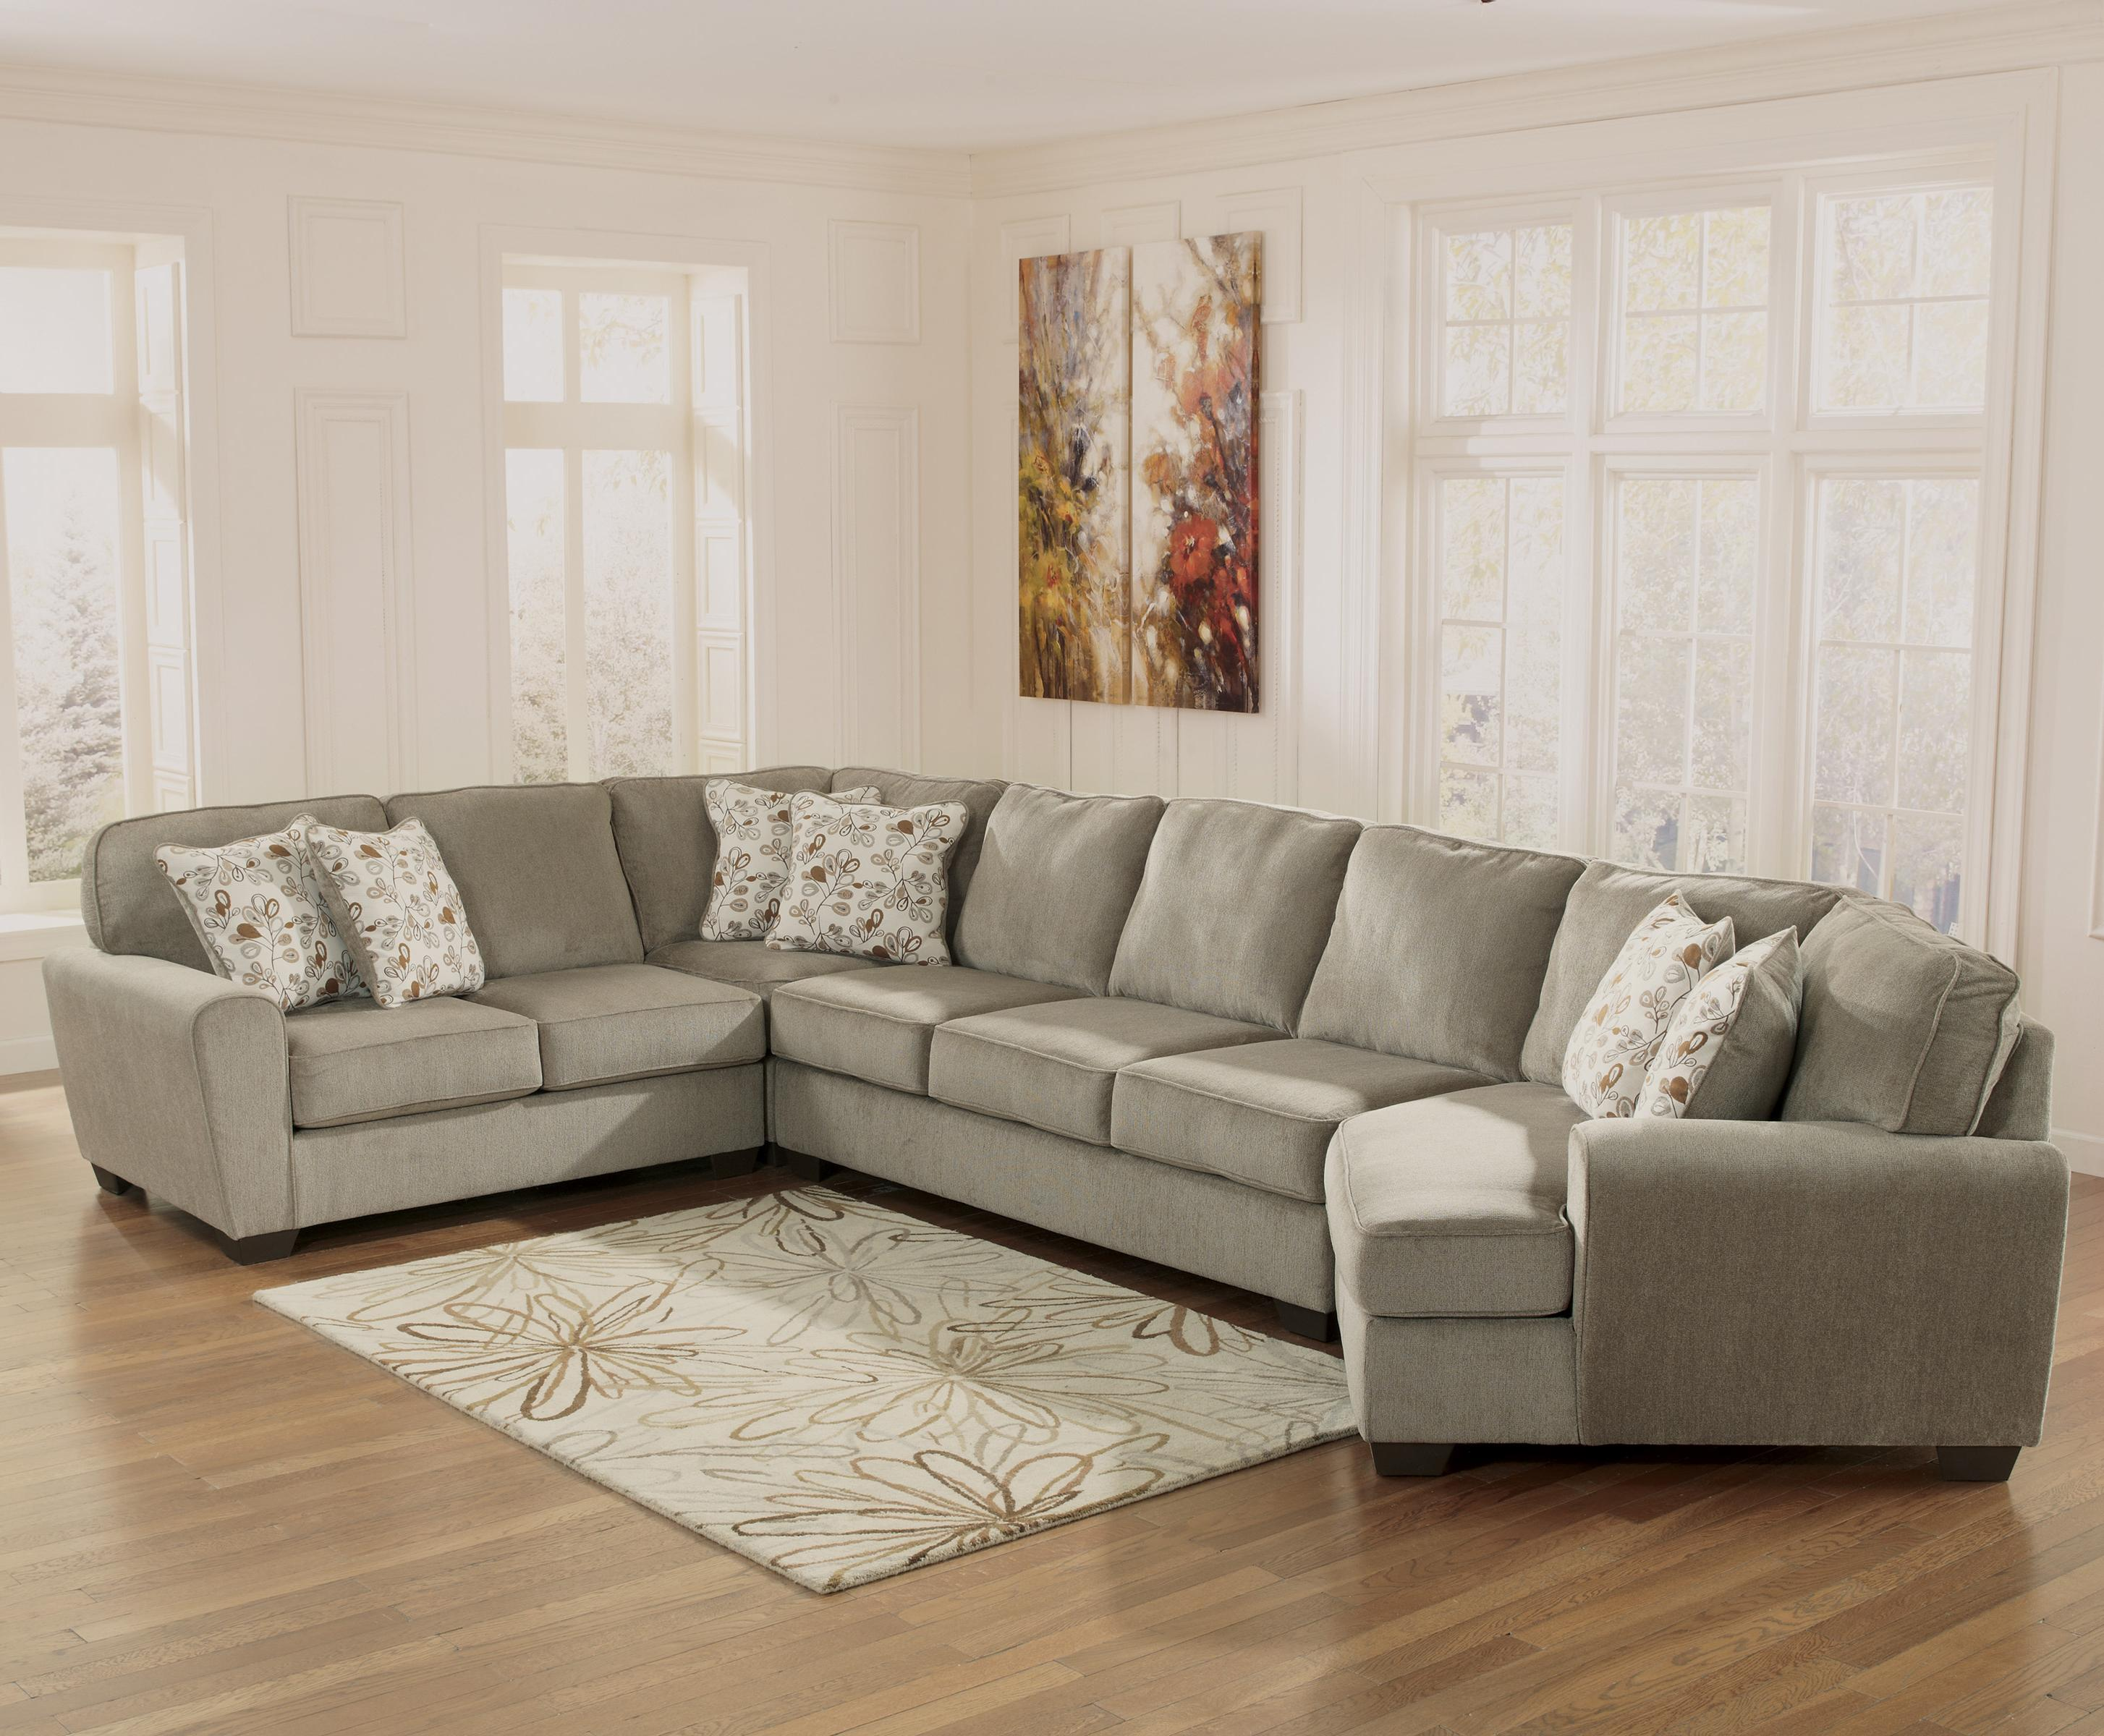 Ashley Furniture Patola Park - Patina 4-Piece Sectional with Right Cuddler - Item Number: 1290055+77+99+75